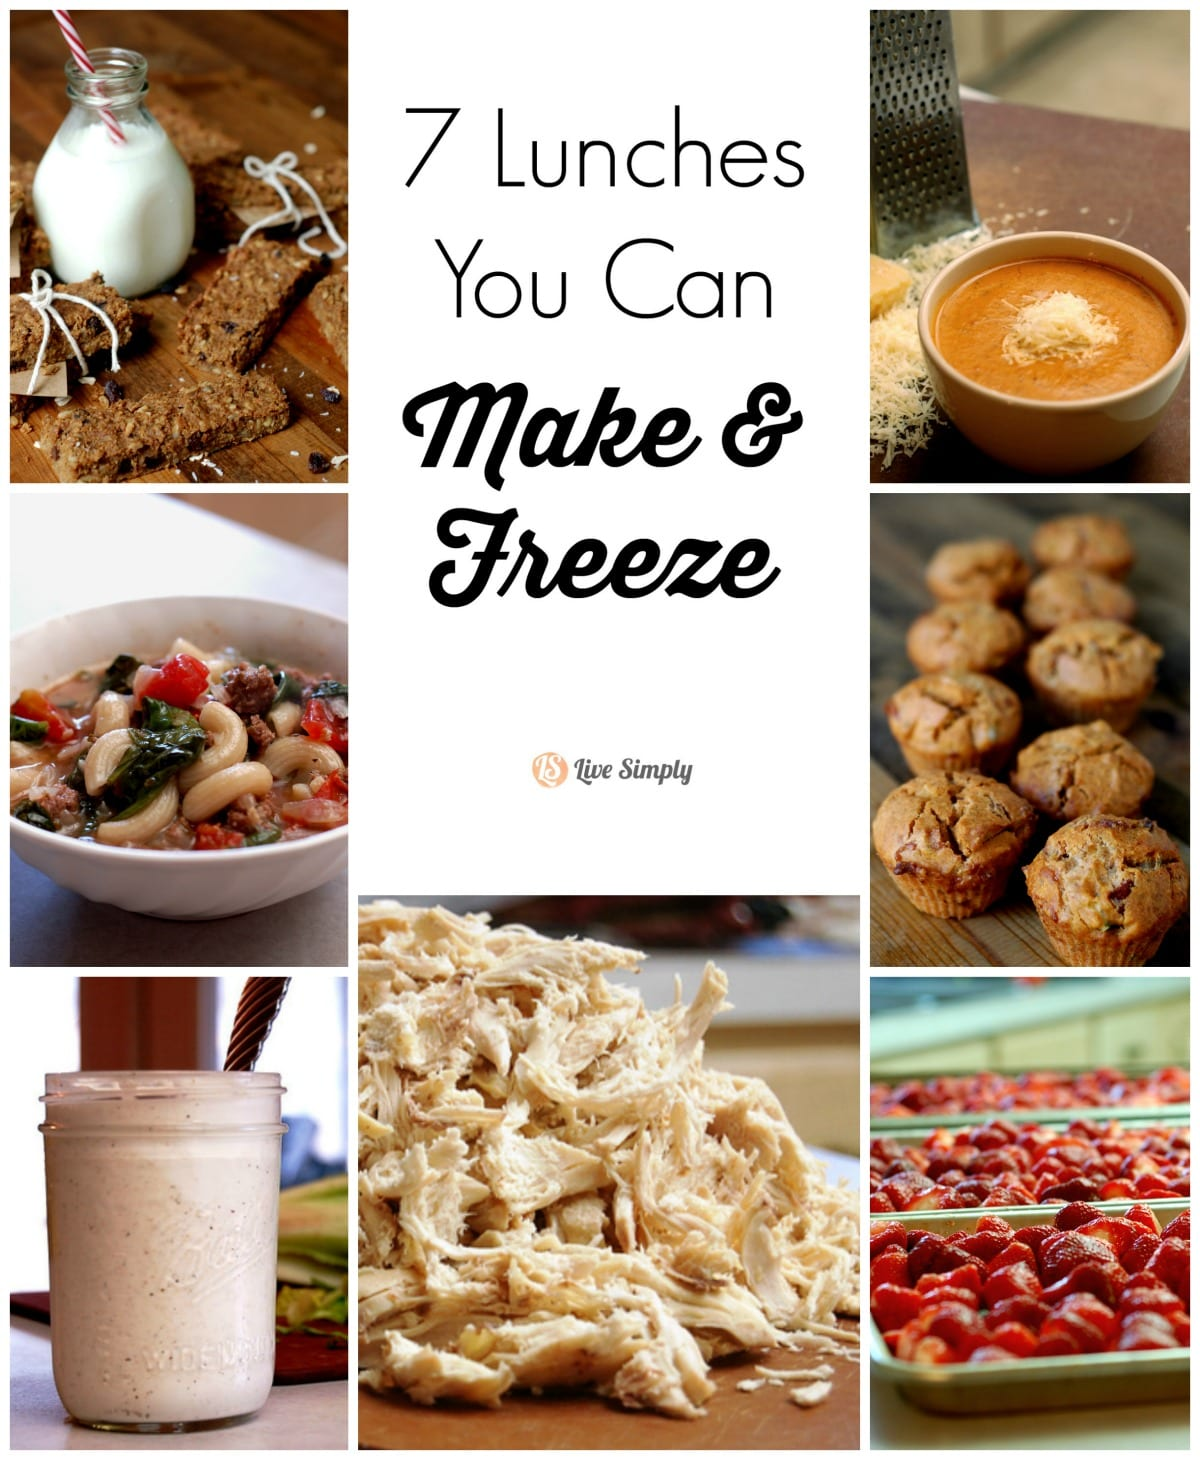 So many awesome ideas for freezing lunches that go beyond the sandwich! 7 Lunches You Can Make and Freeze